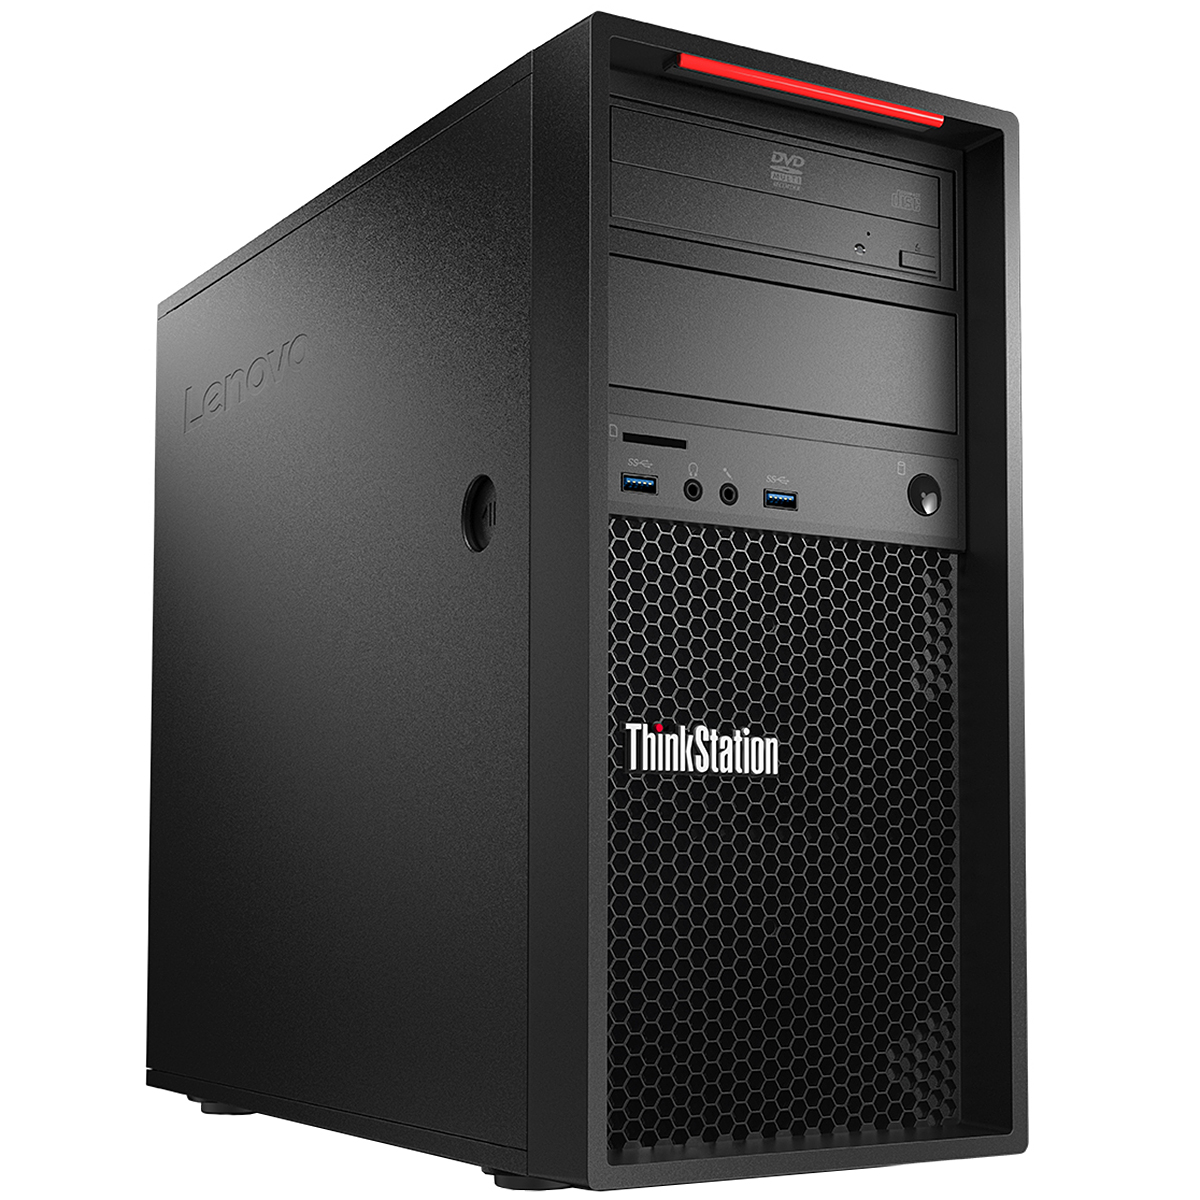 Pc De Bureau Lenovo Thinkstation P Bfr Intel Xeon E